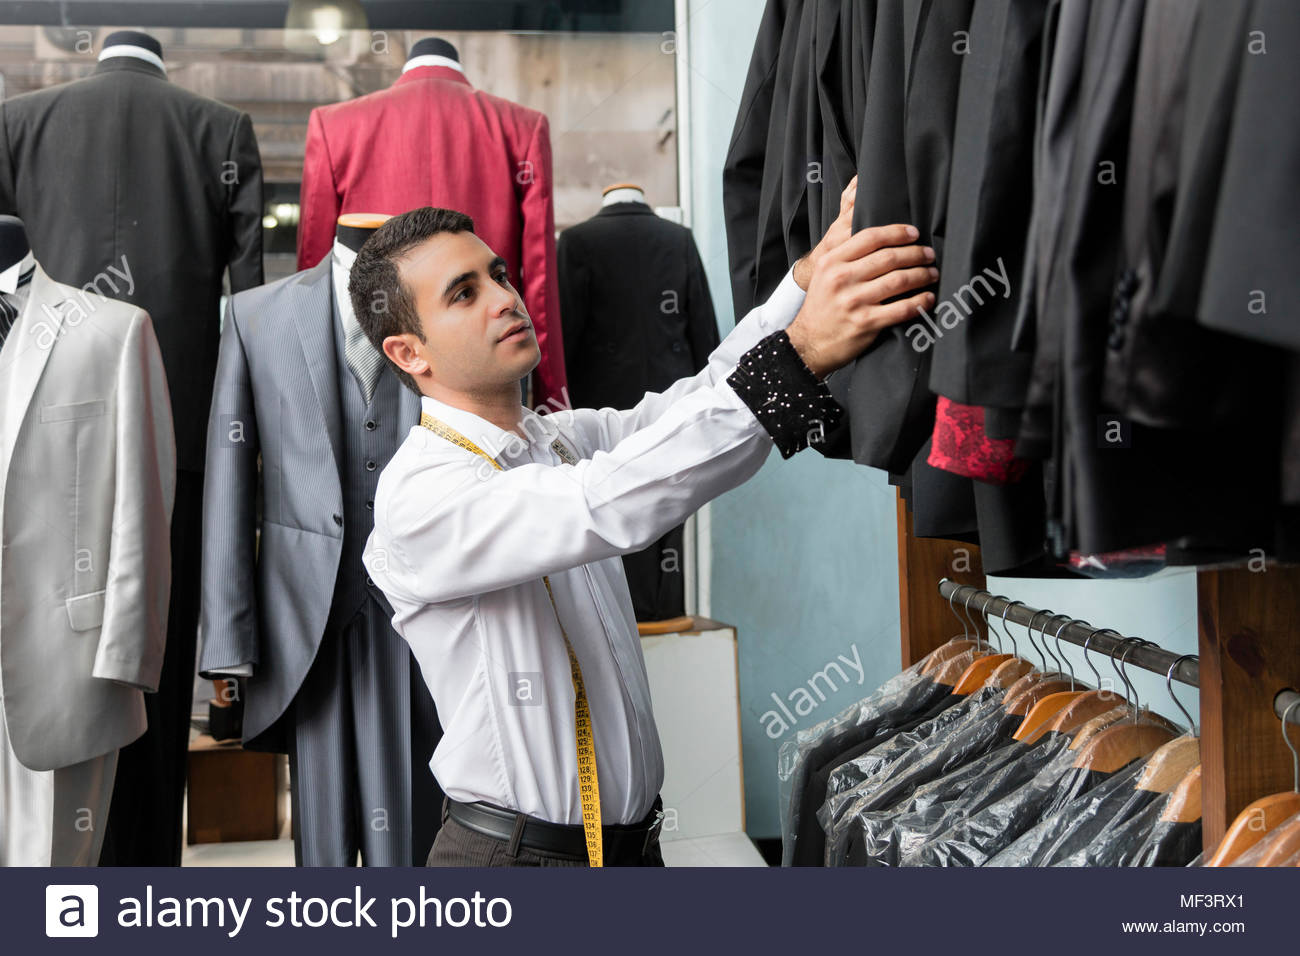 Tailor tidying up suit jackets in tailor shop - Stock Image